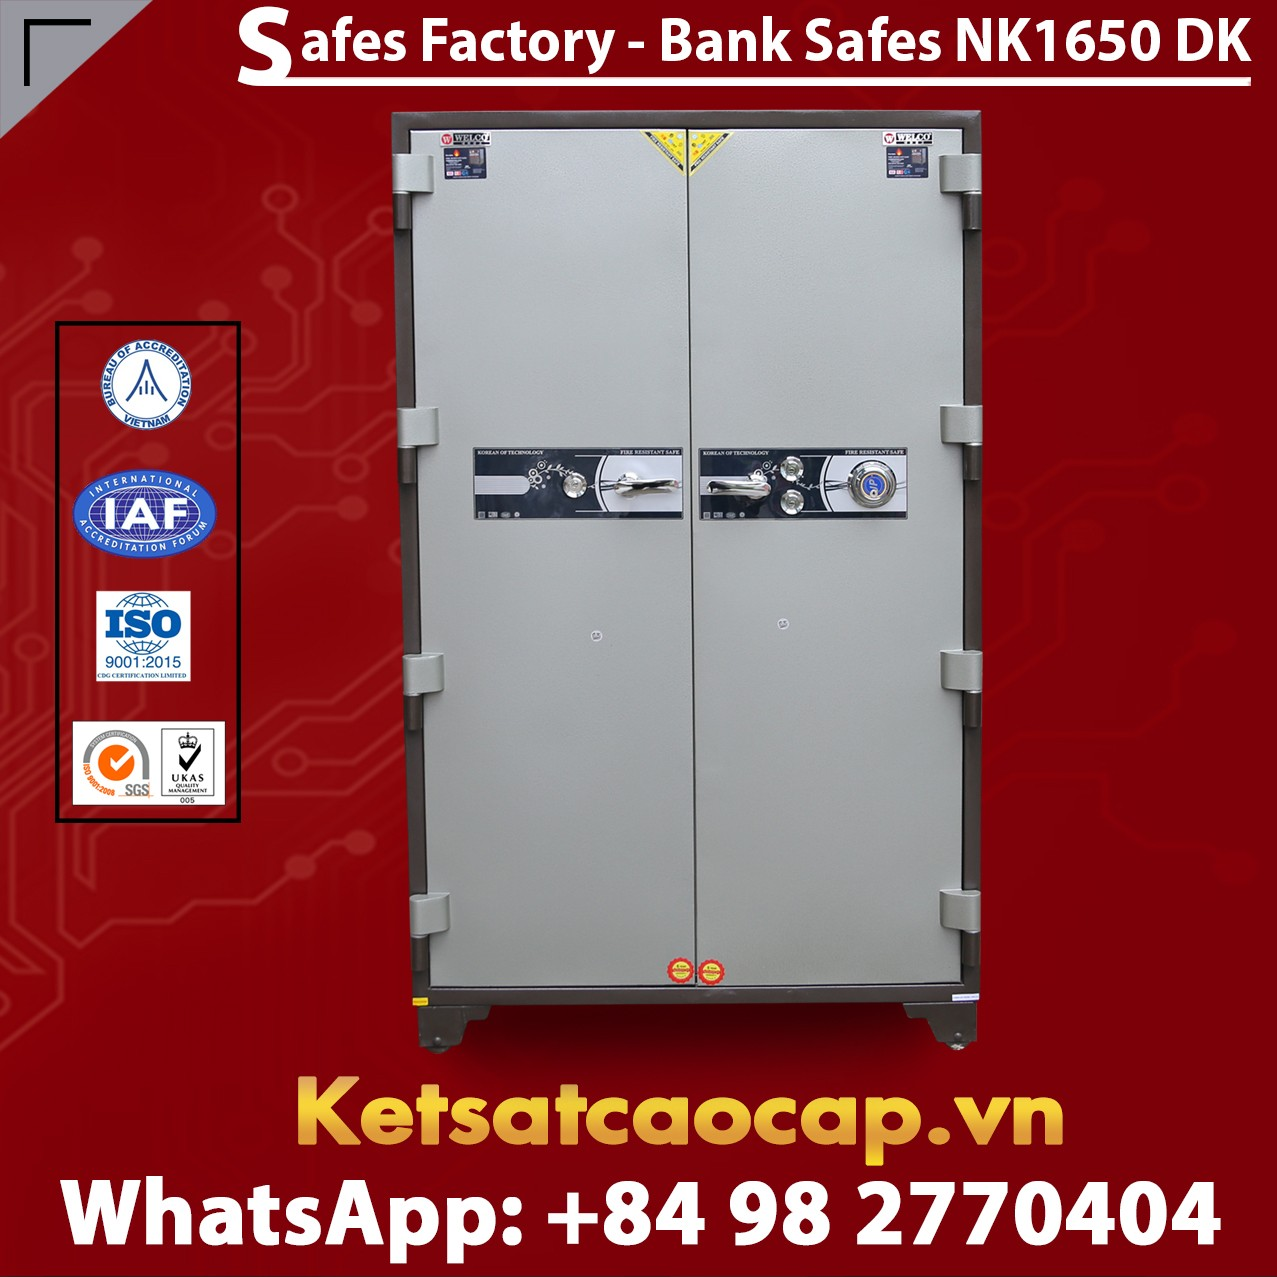 Bank Safes NK 1650 DK Two Door Fingerprint Locking Customized Models